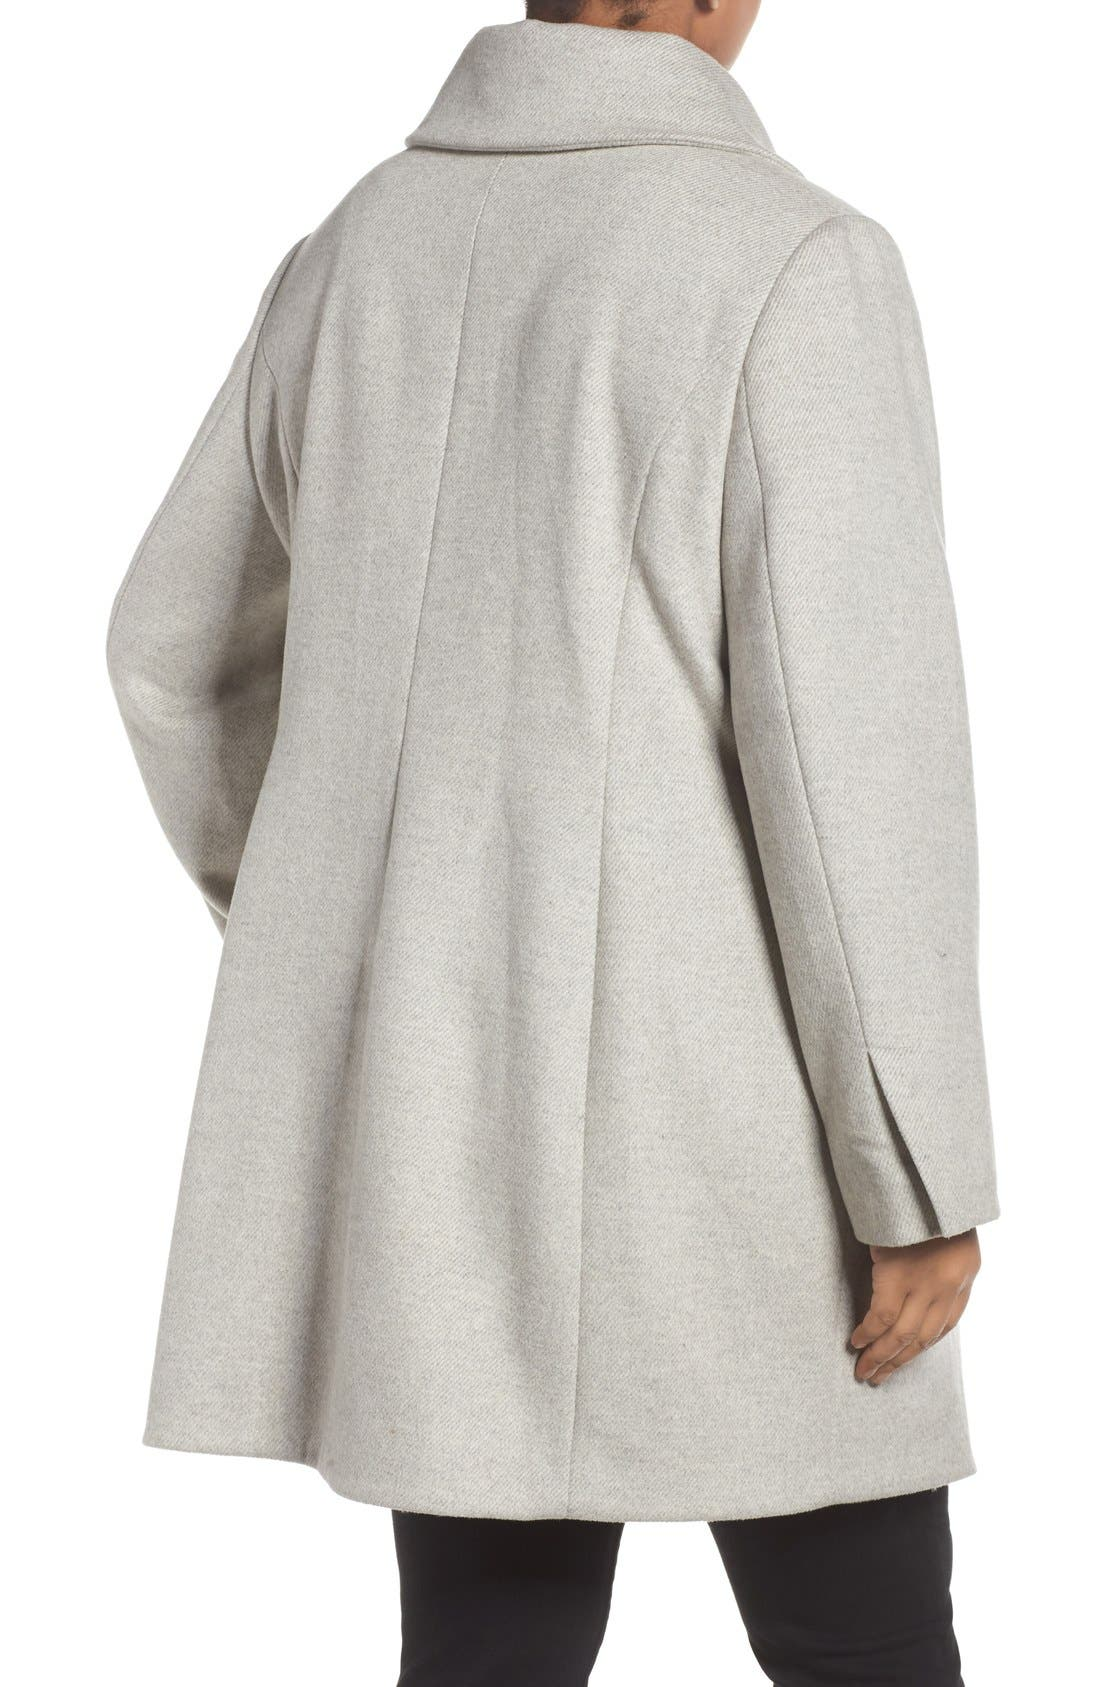 Asymmetrical Coat,                             Alternate thumbnail 2, color,                             Light Grey